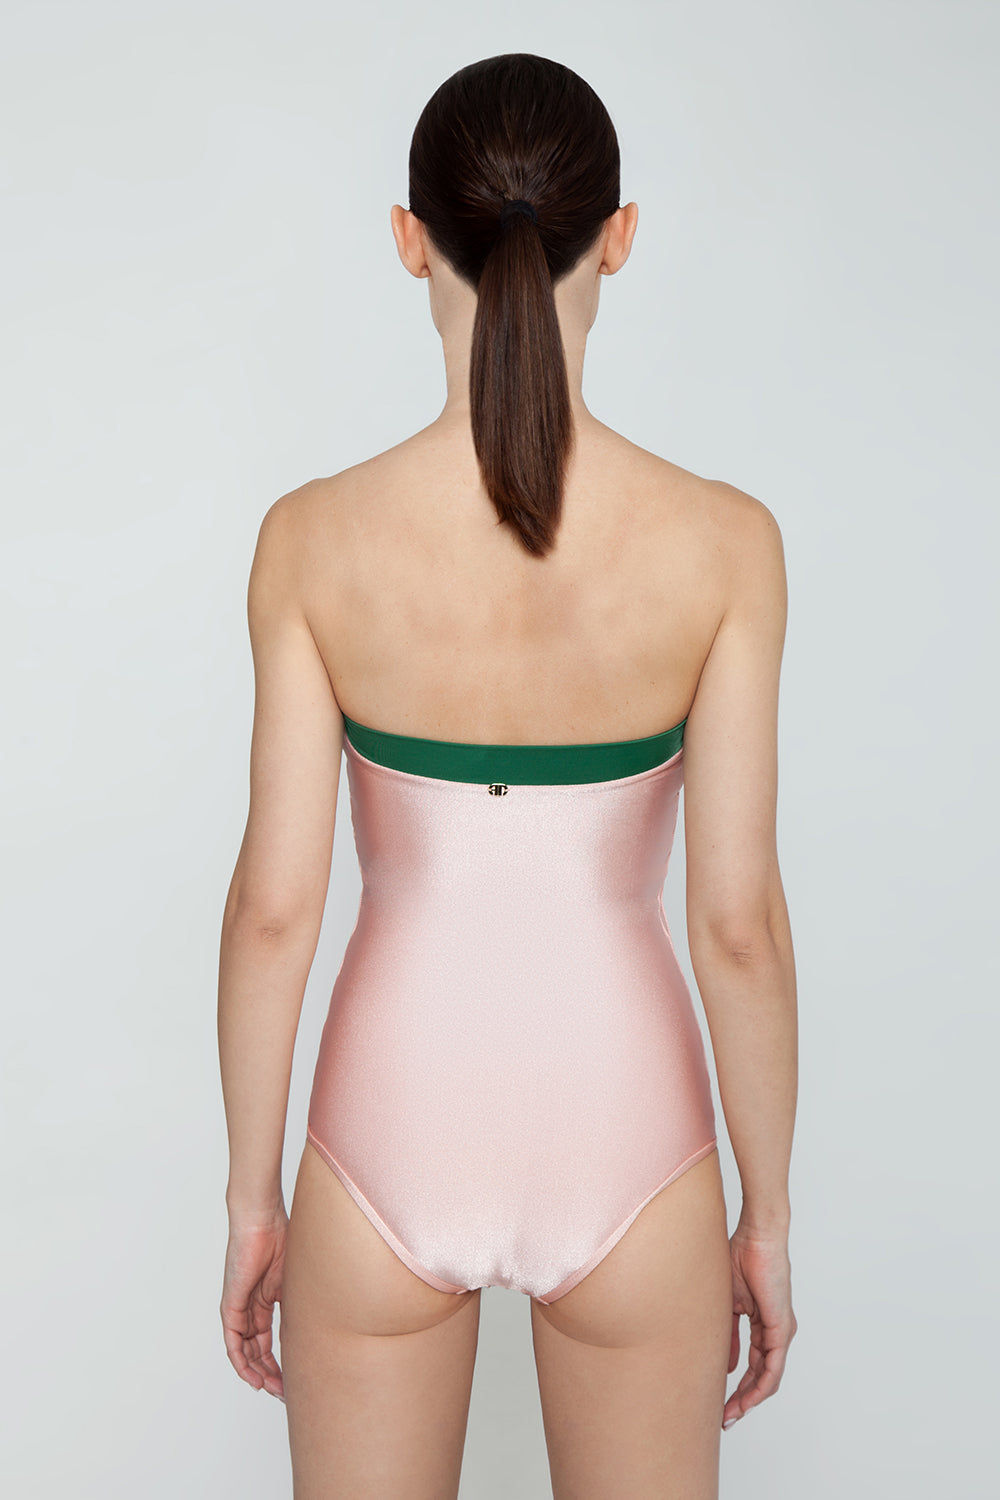 ADRIANA DEGREAS Strapless One Piece Swimsuit - Bicolor Light Pink/Emerald Green One Piece | Bicolor Light Pink/Emerald Green| Adriana Degreas Bicolor Strapless One Piece Swimsuit - Light Pink/Emerald Green. Features:  Strapless swimsuit with front knot detail. The strapless swimsuit is perfect for those who want to avoid tan lines. Main: 84% Polyamide 16% Spandex. Back View